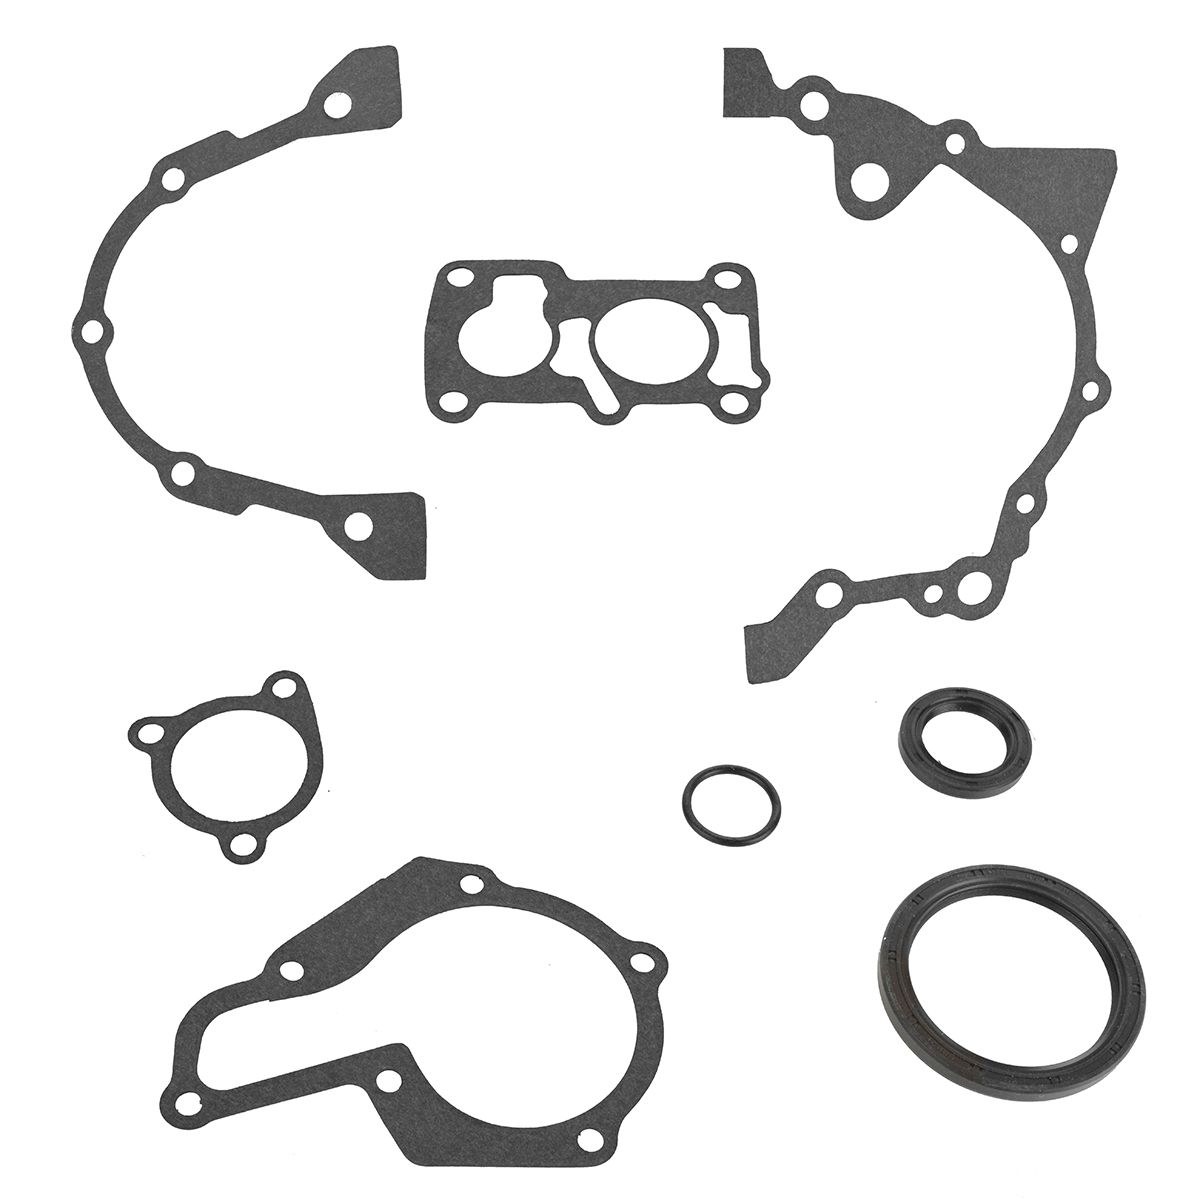 hight resolution of lower engine gasket set for geo metro chevy sprint firefly